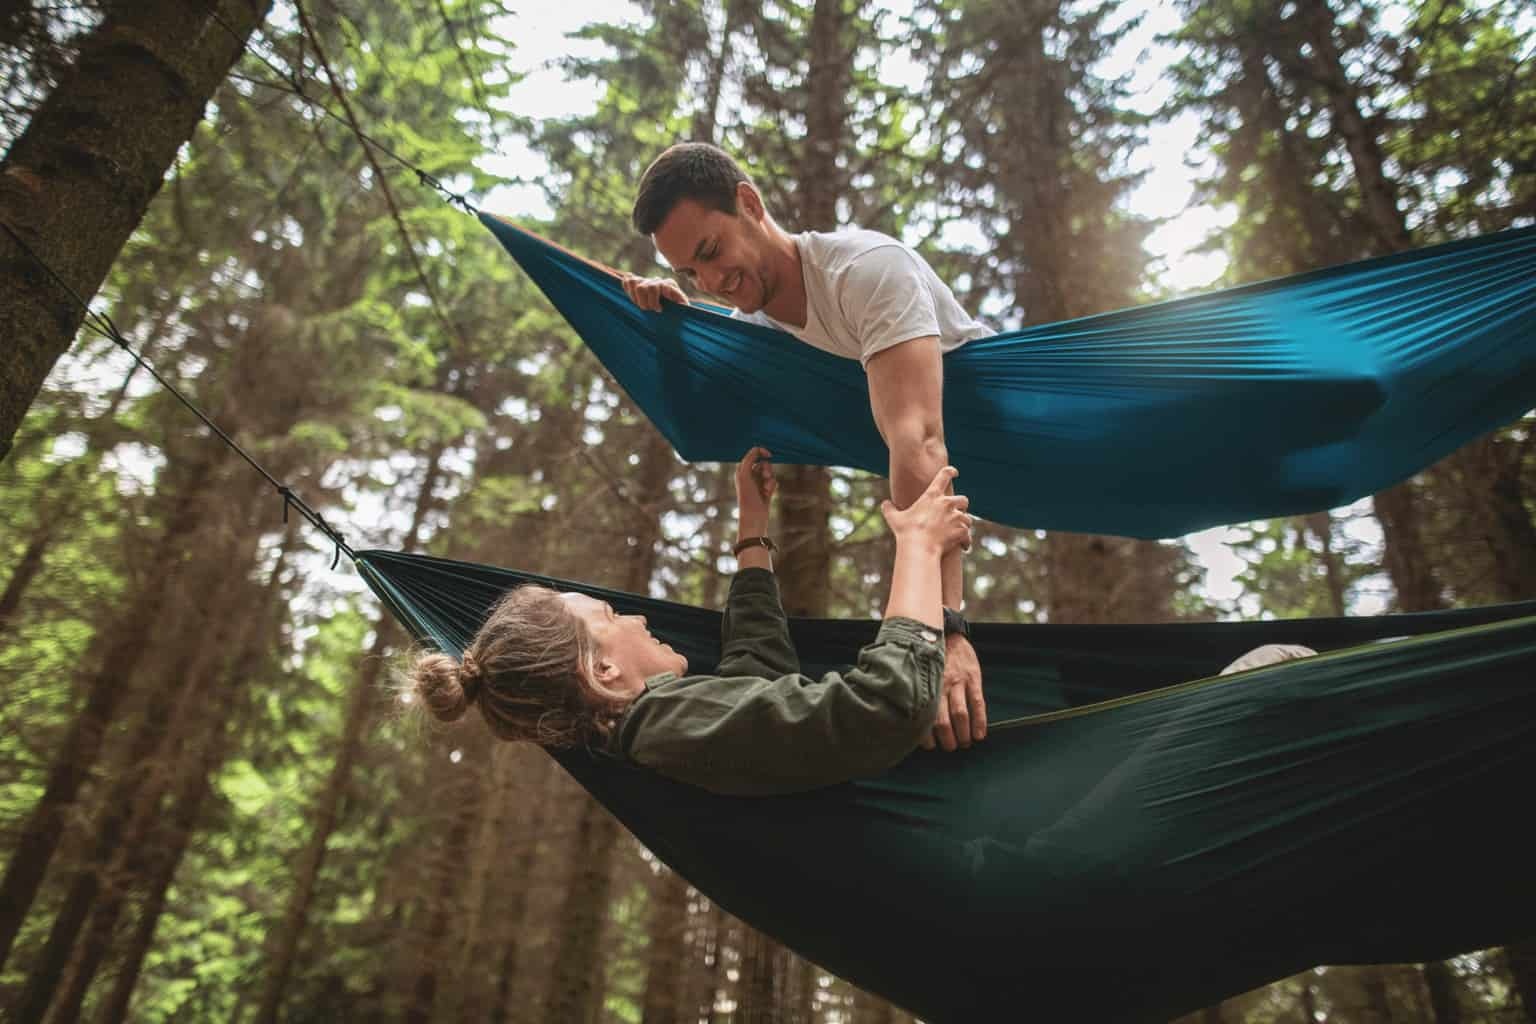 Playful couple laying in two seperate hammocks in the pine forrest. The camera is at a low angle, looking up. The woman is in a green hammock reaching up to the man in the blue hammock who is looking down at her. They both look very happy and lots of playfulness towards each other..